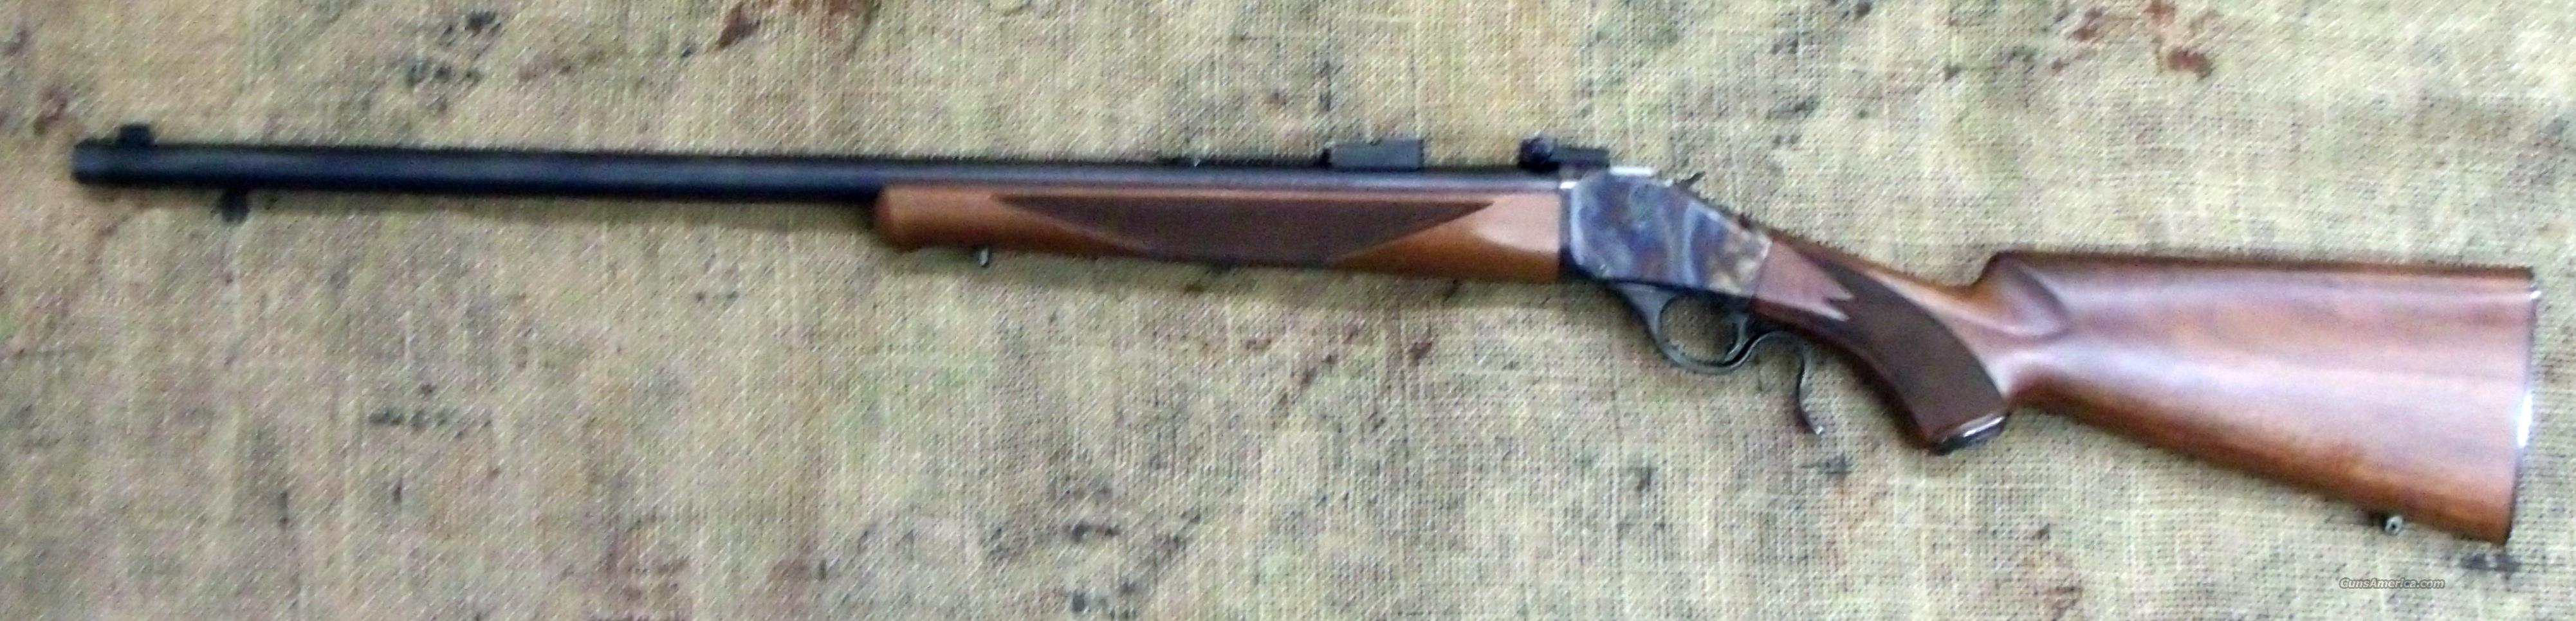 Winchester Model 1885 Traditional Sporter, 45-70 Cal  Guns > Rifles > Winchester Rifles - Modern Bolt/Auto/Single > Single Shot